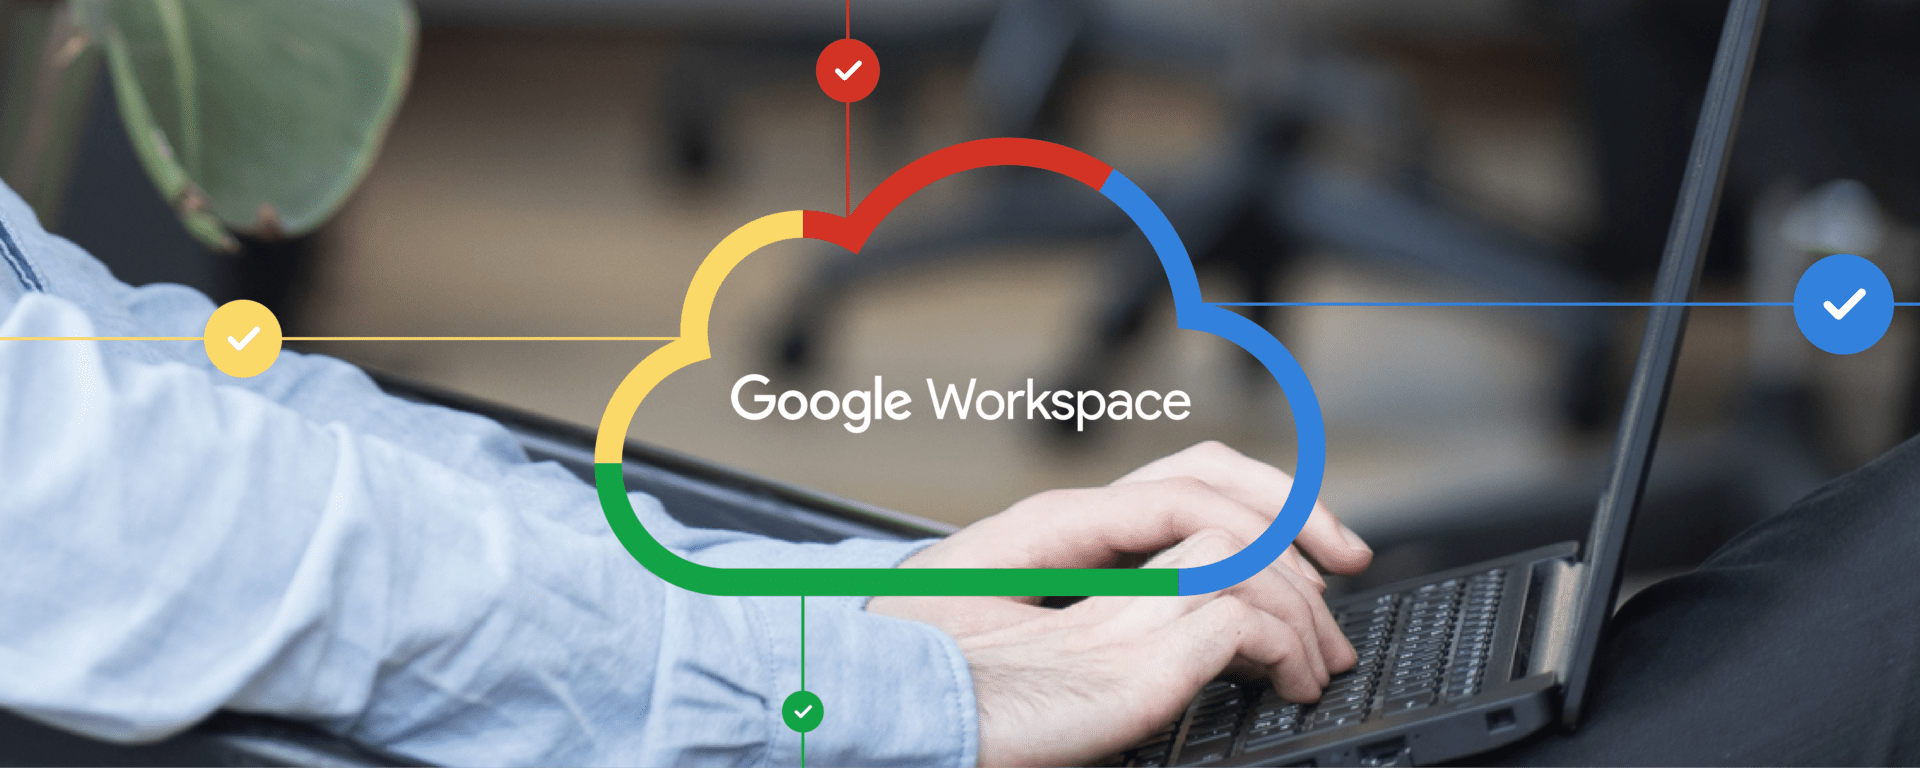 How to use Google Workspace Effectively for your Business